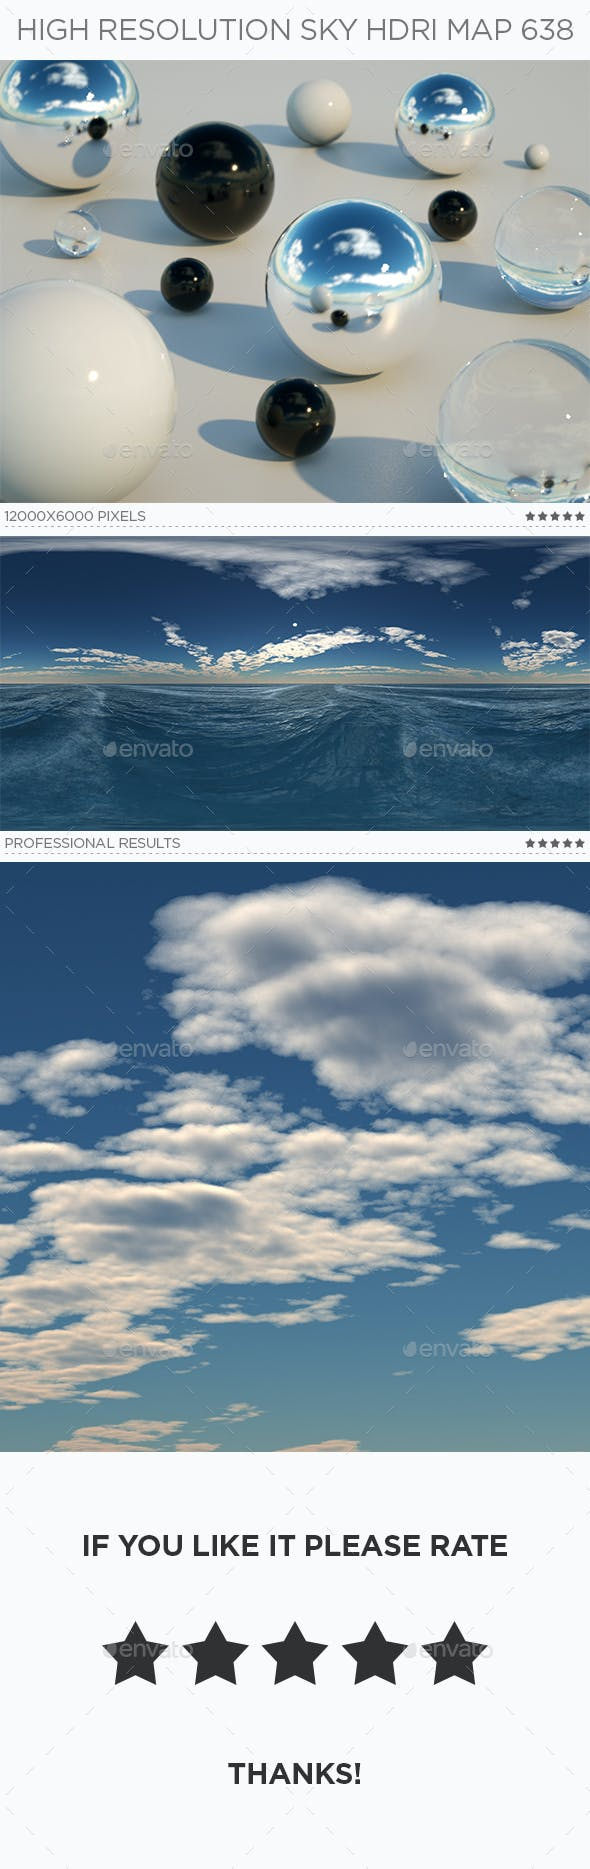 High Resolution Sky HDRi Map 638 - 3DOcean Item for Sale